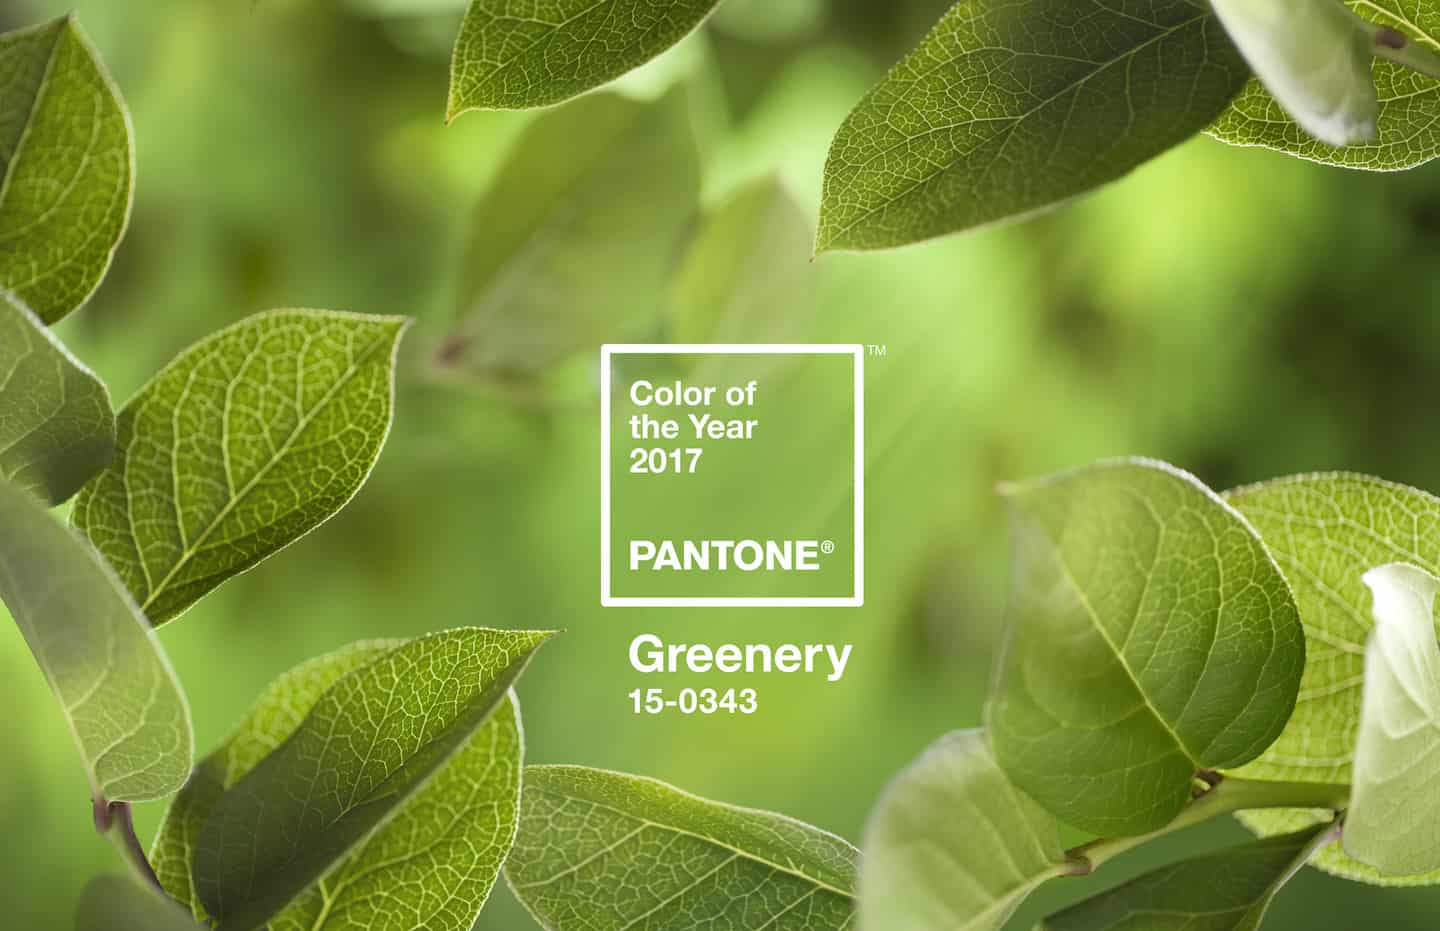 Pantone® Greenery é a cor do ano de 2017 - AcrediteCo